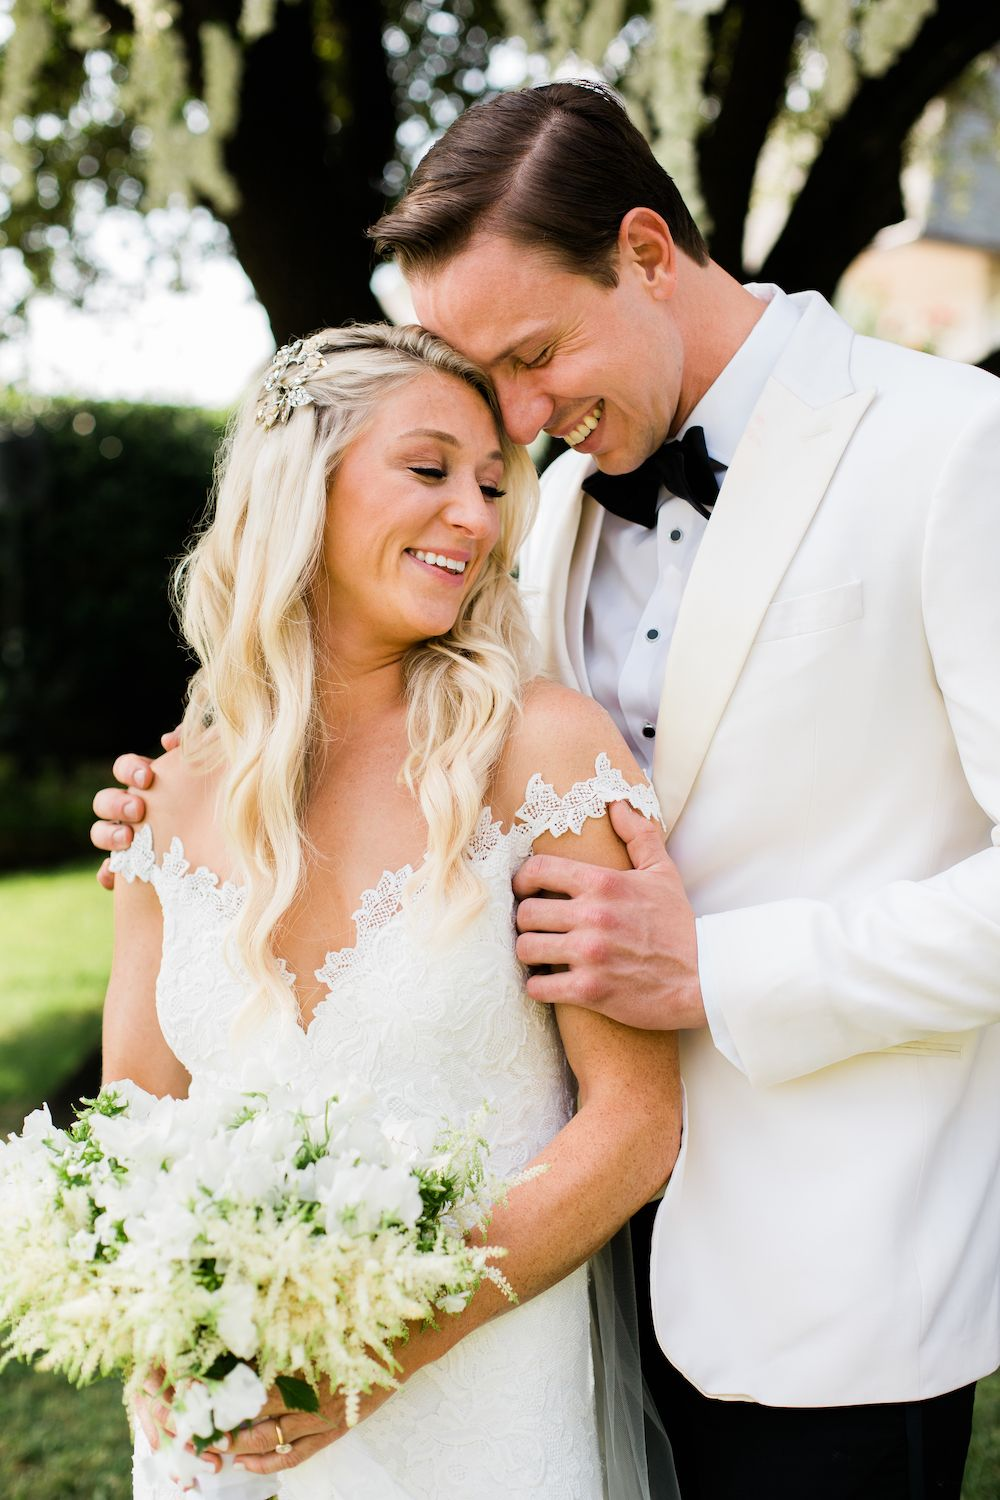 Aaron Snow Photography Oklahoma Wedding Photographer bride groom white tuxedo OKC Golf Country Club Jacquelyn Elmer Clay